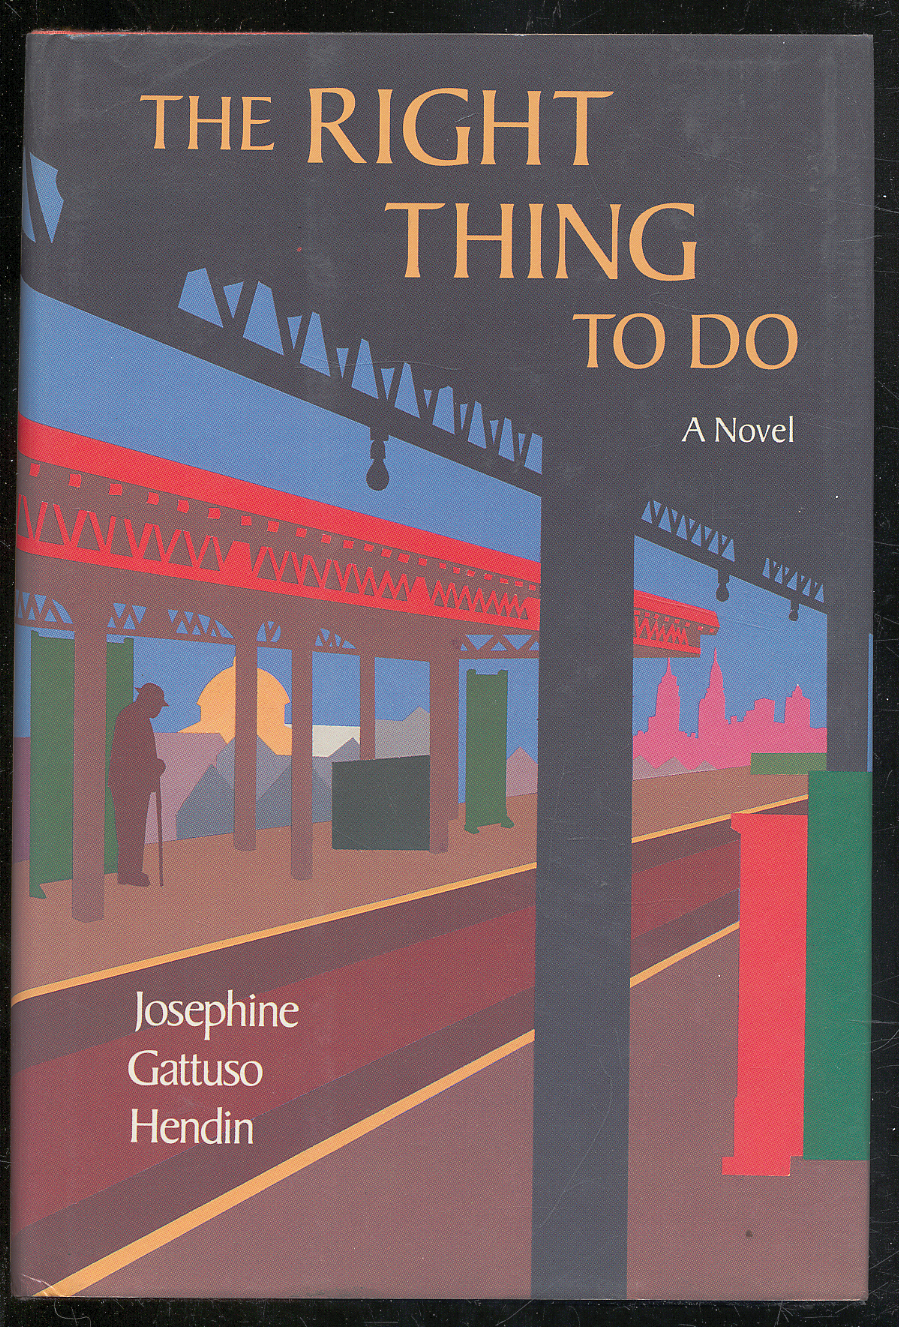 The Right Thing to Do HENDIN, Josephine Gattuso